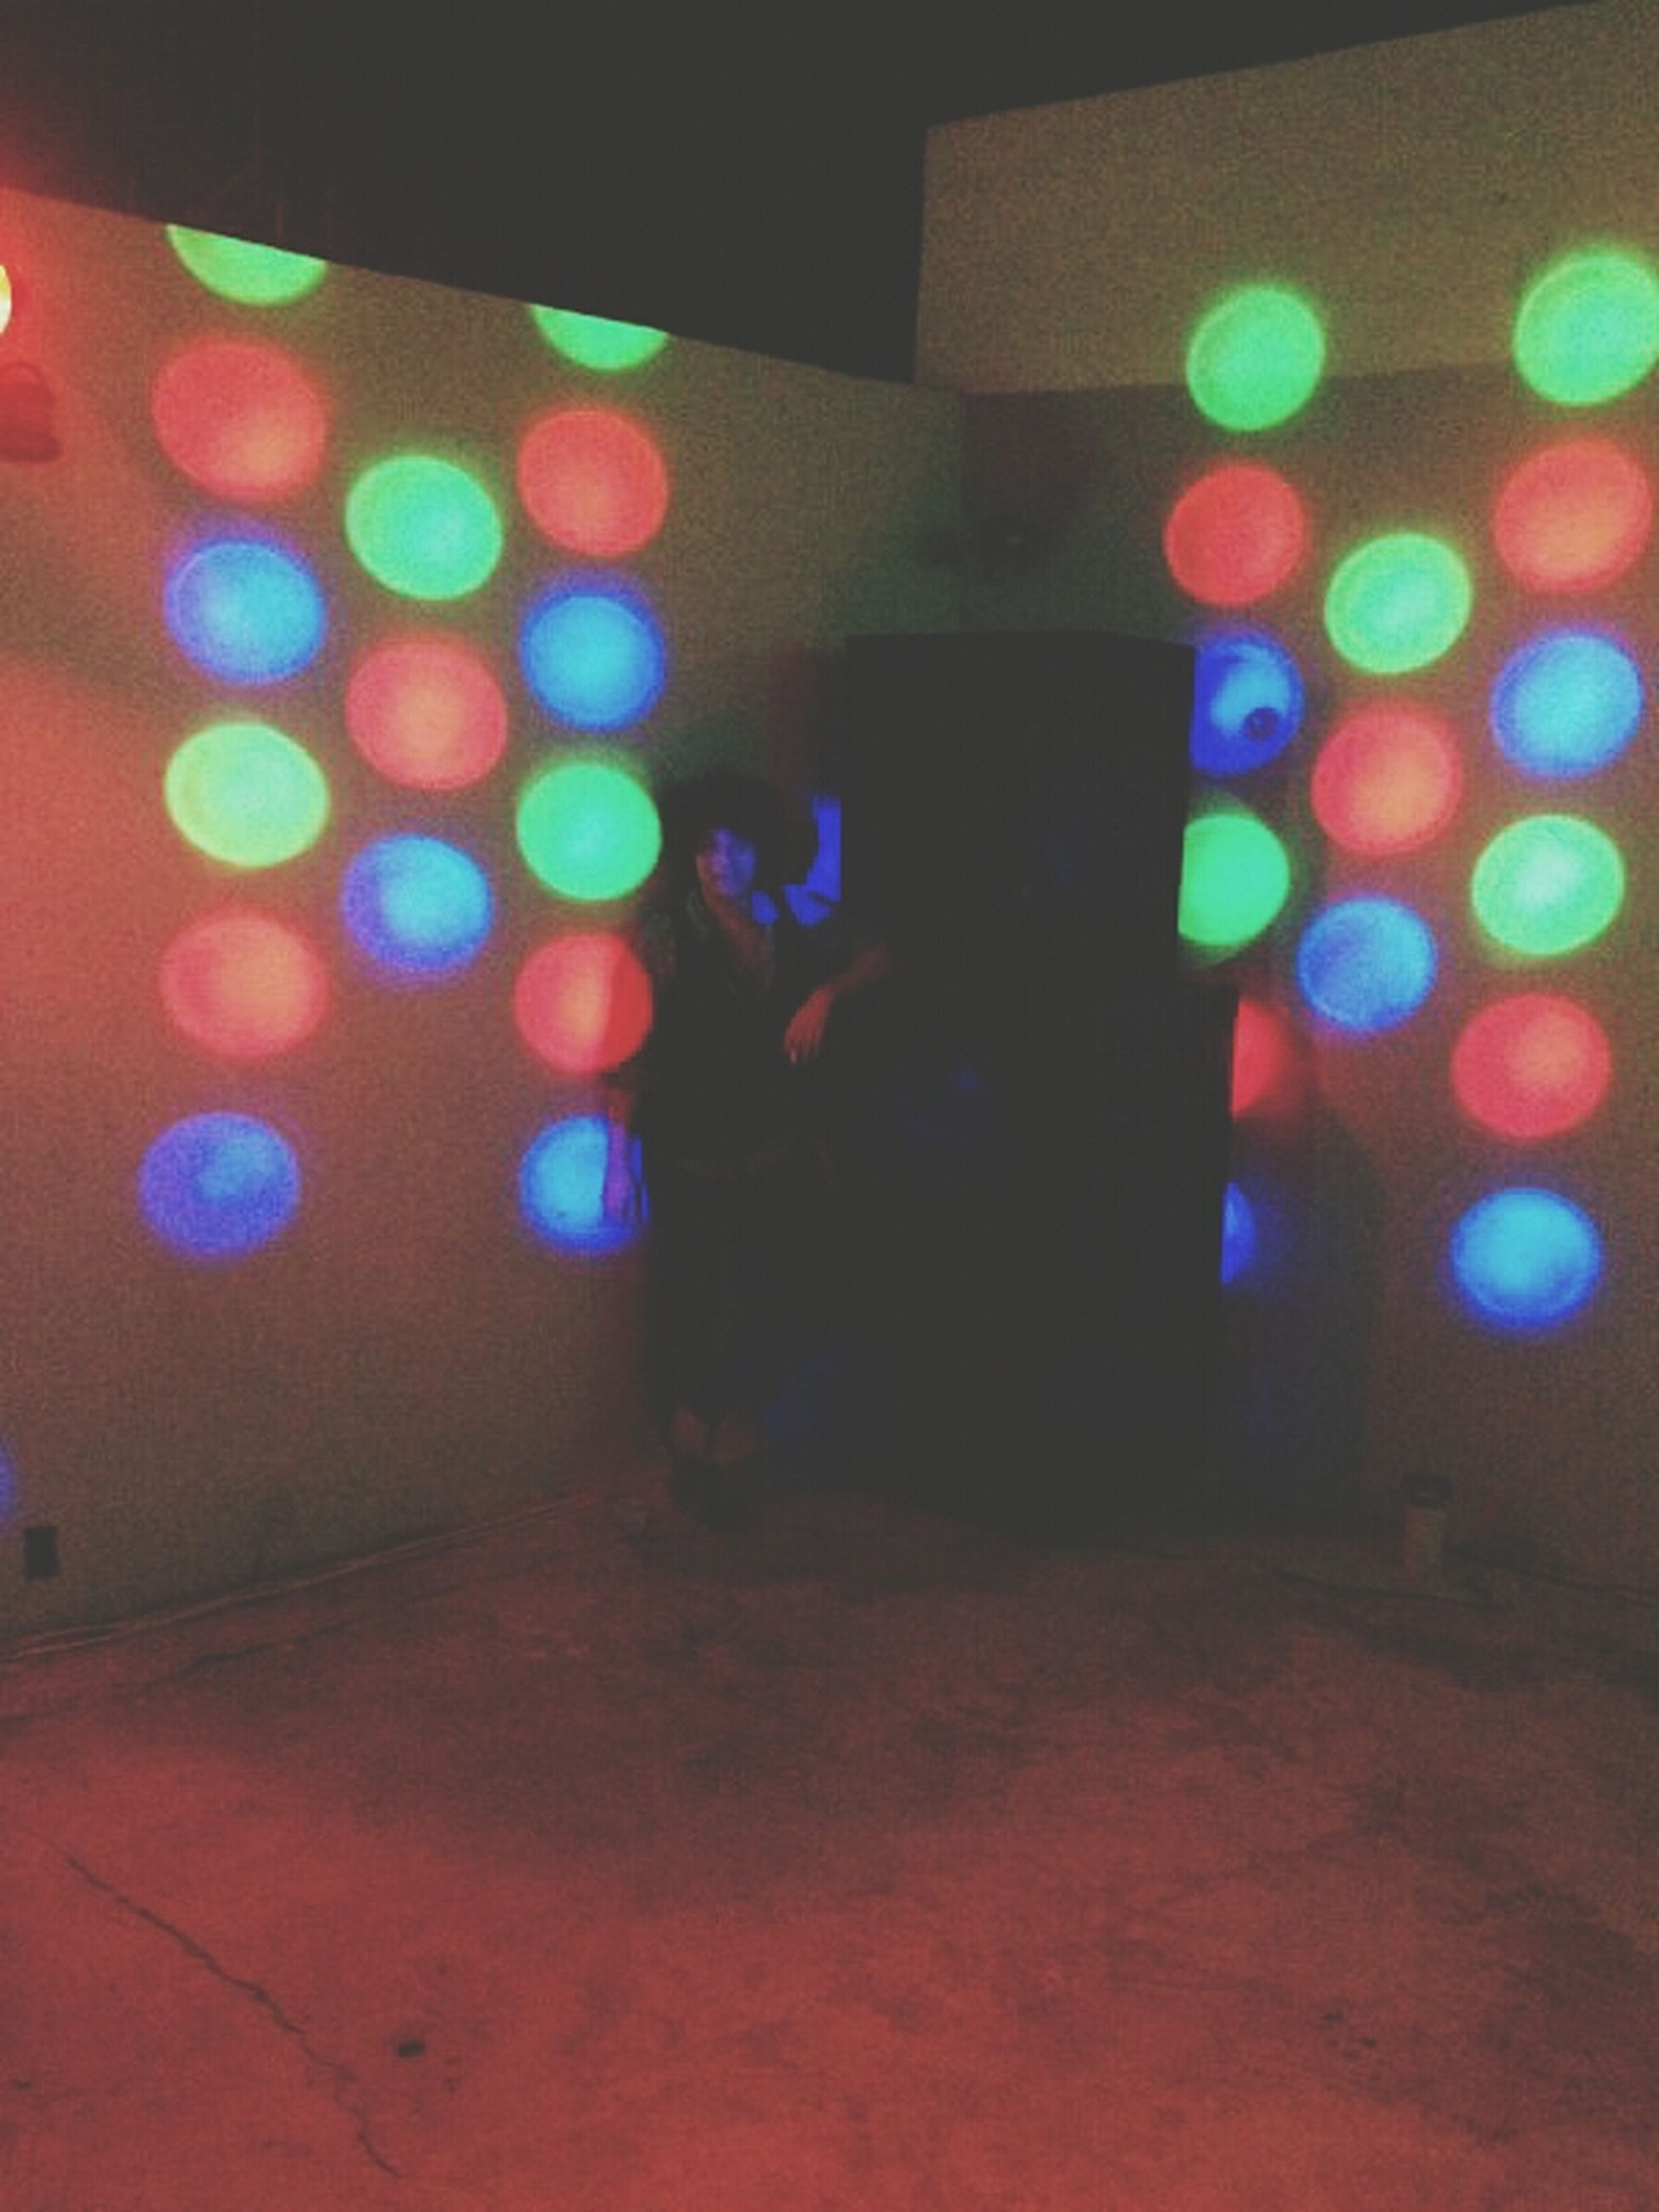 illuminated, night, lighting equipment, multi colored, indoors, light - natural phenomenon, glowing, electric light, no people, light, colorful, defocused, built structure, electricity, decoration, wall - building feature, circle, architecture, red, lit